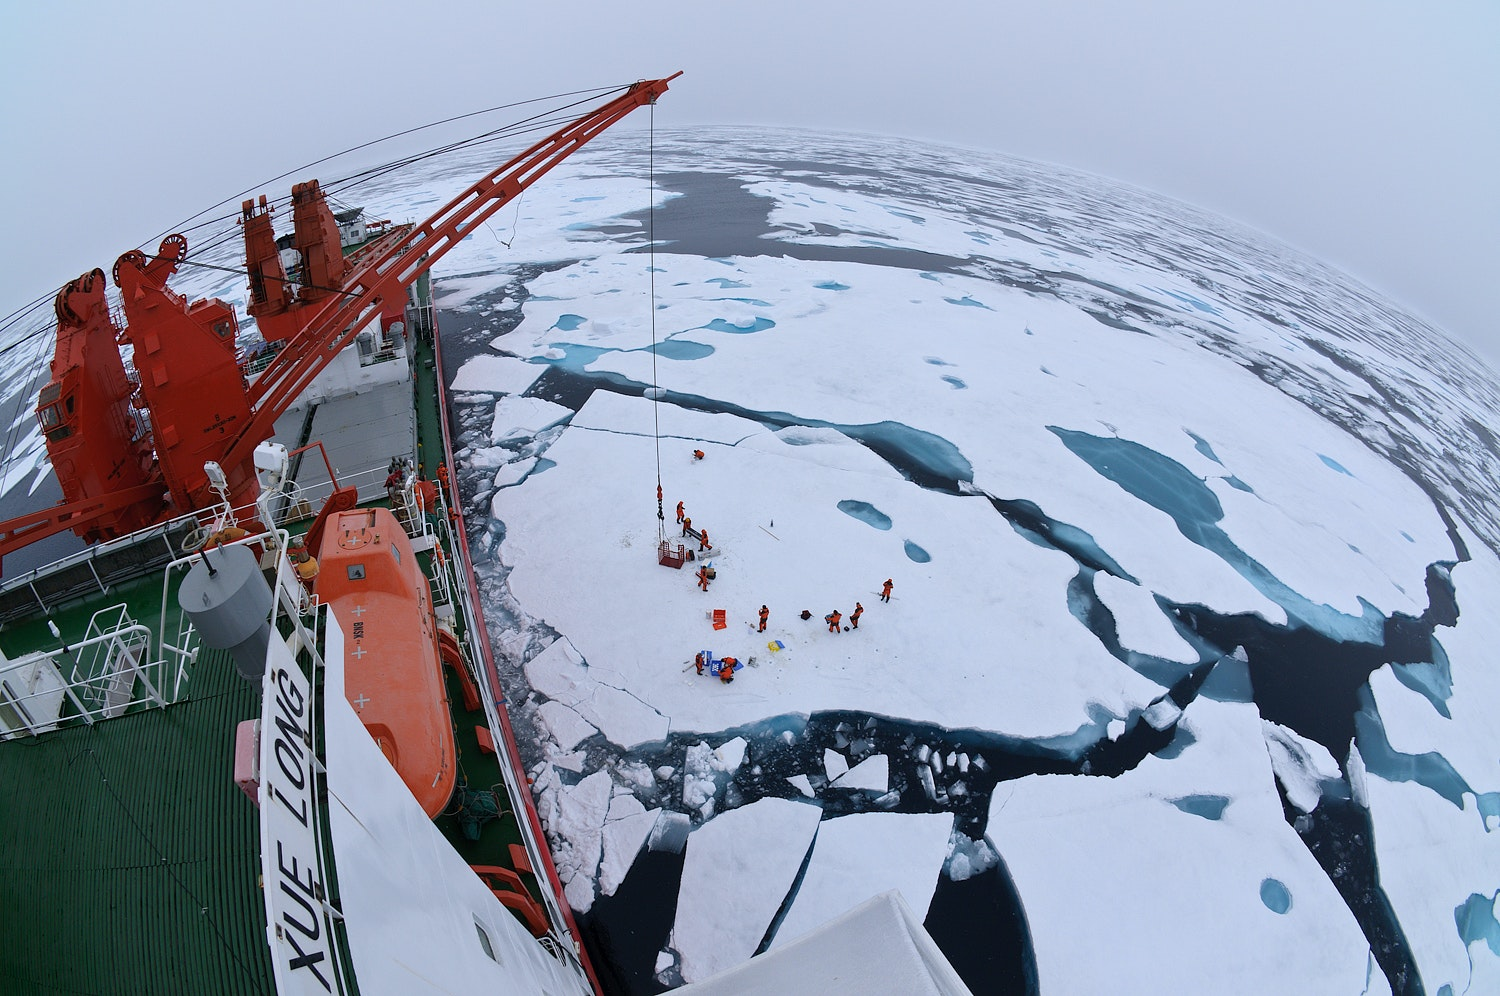 With All Eyes on China, Singapore Makes Its Own Arctic Moves